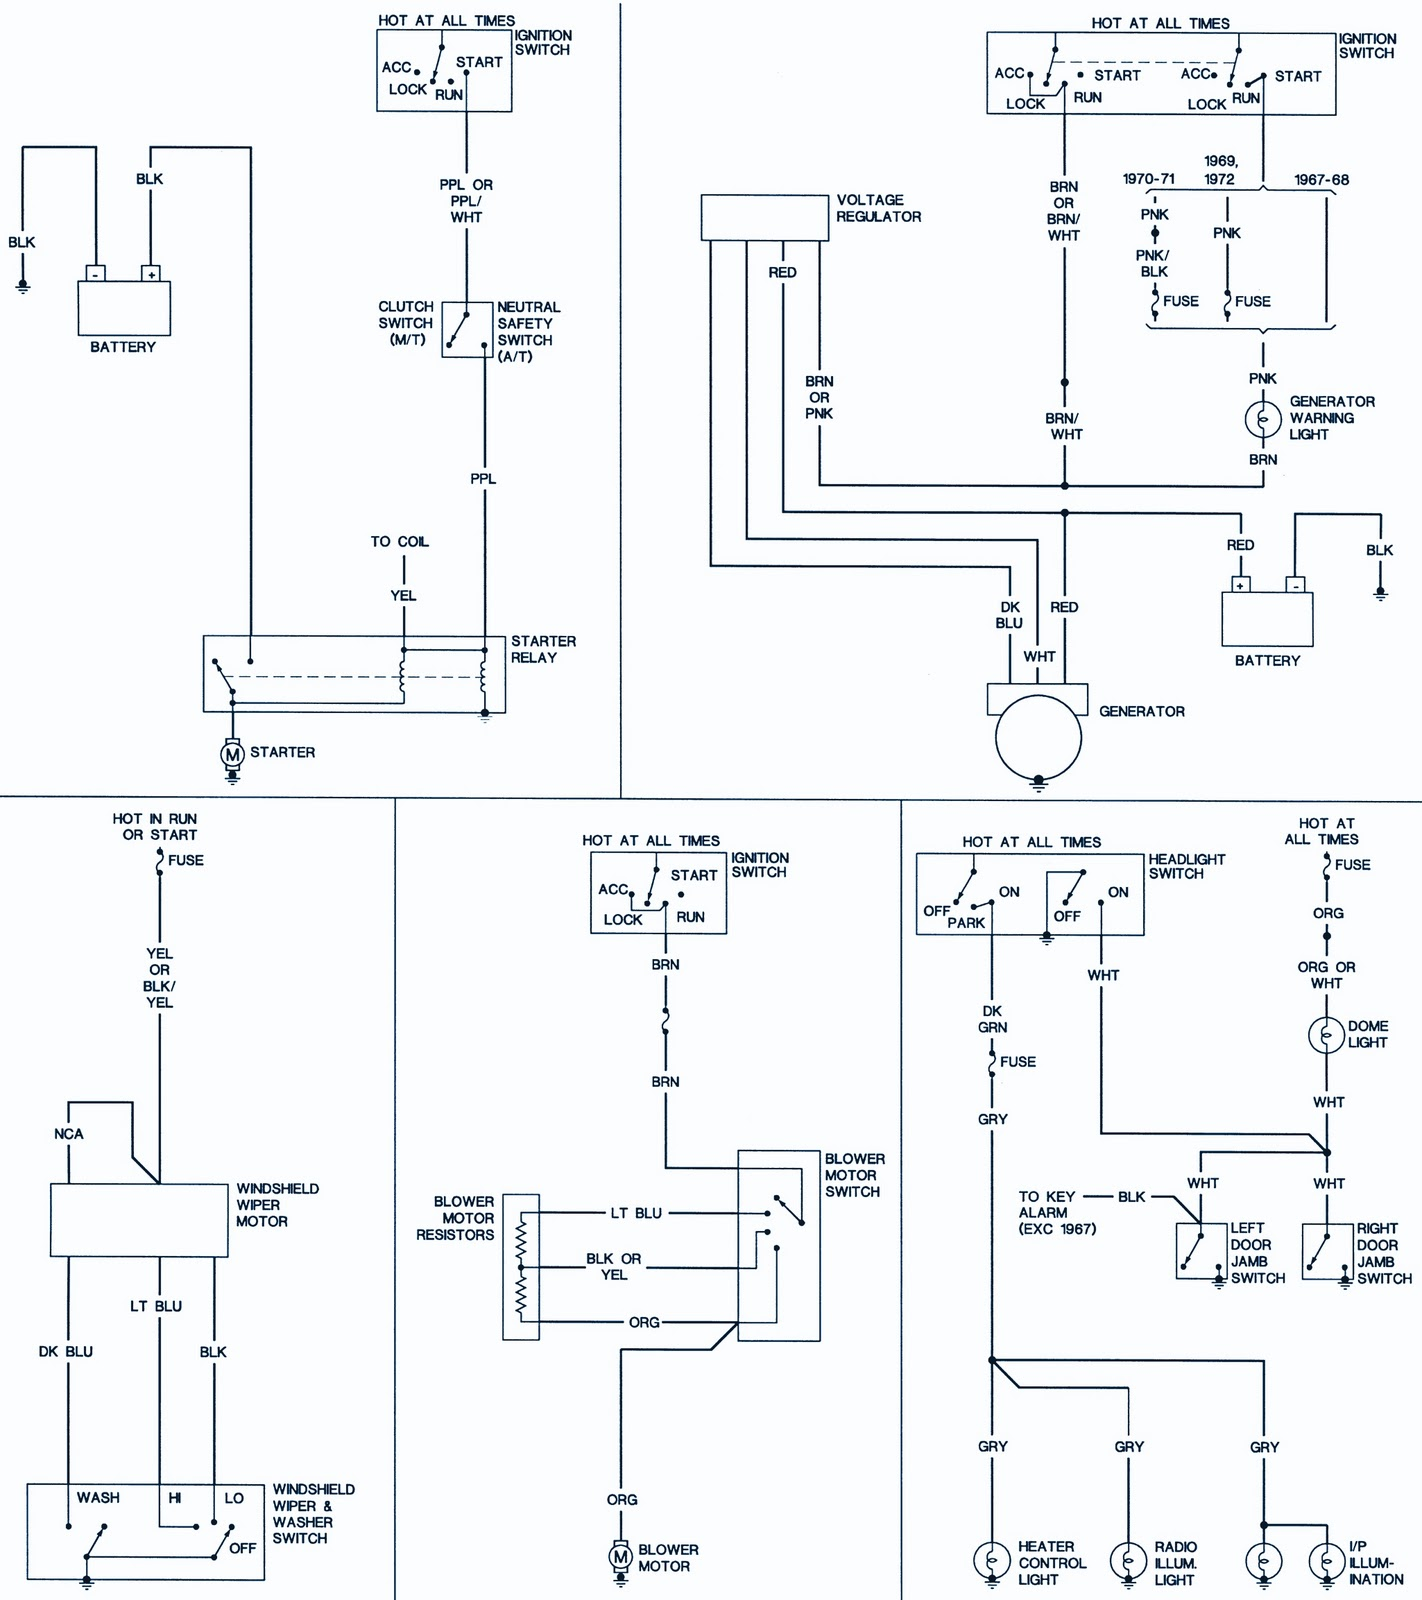 02 Sensor Wiring Diagram Free Download Schematic | Wiring ... on